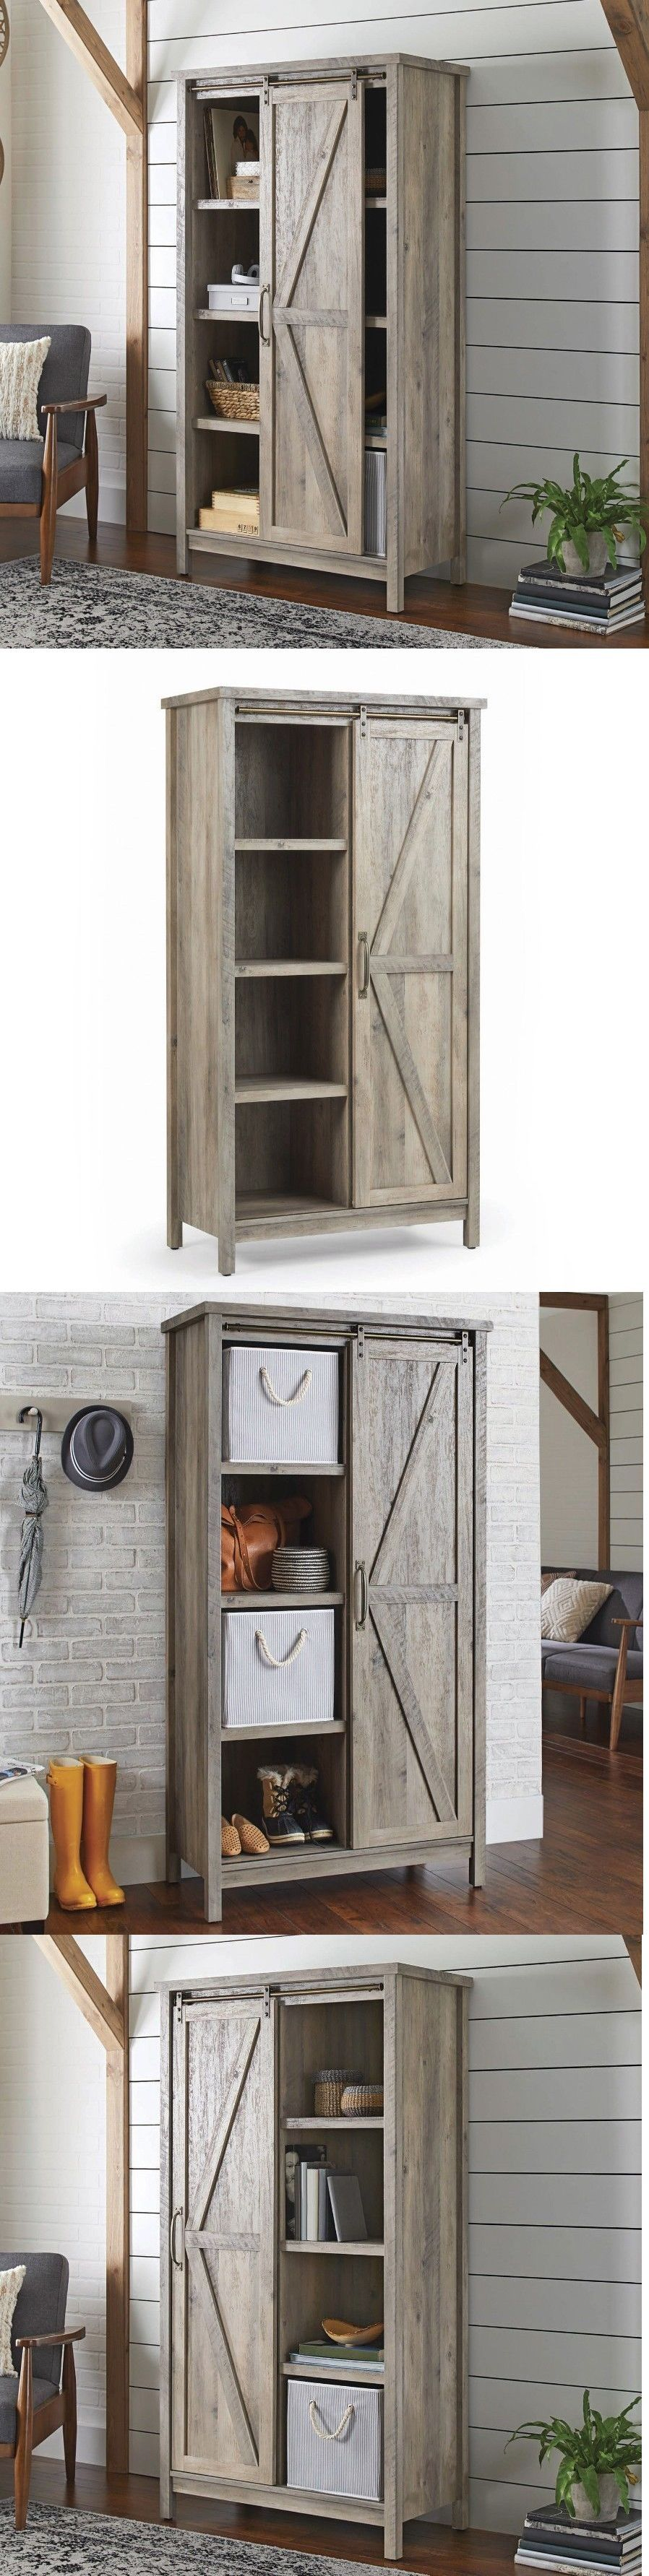 Cabinets And Cupboards 20487 Tall Storage Cabinet Country Wood Rustic Farmhouse Cab Farmhouse Pantry Cabinets Trendy Farmhouse Kitchen Tall Cabinet Storage